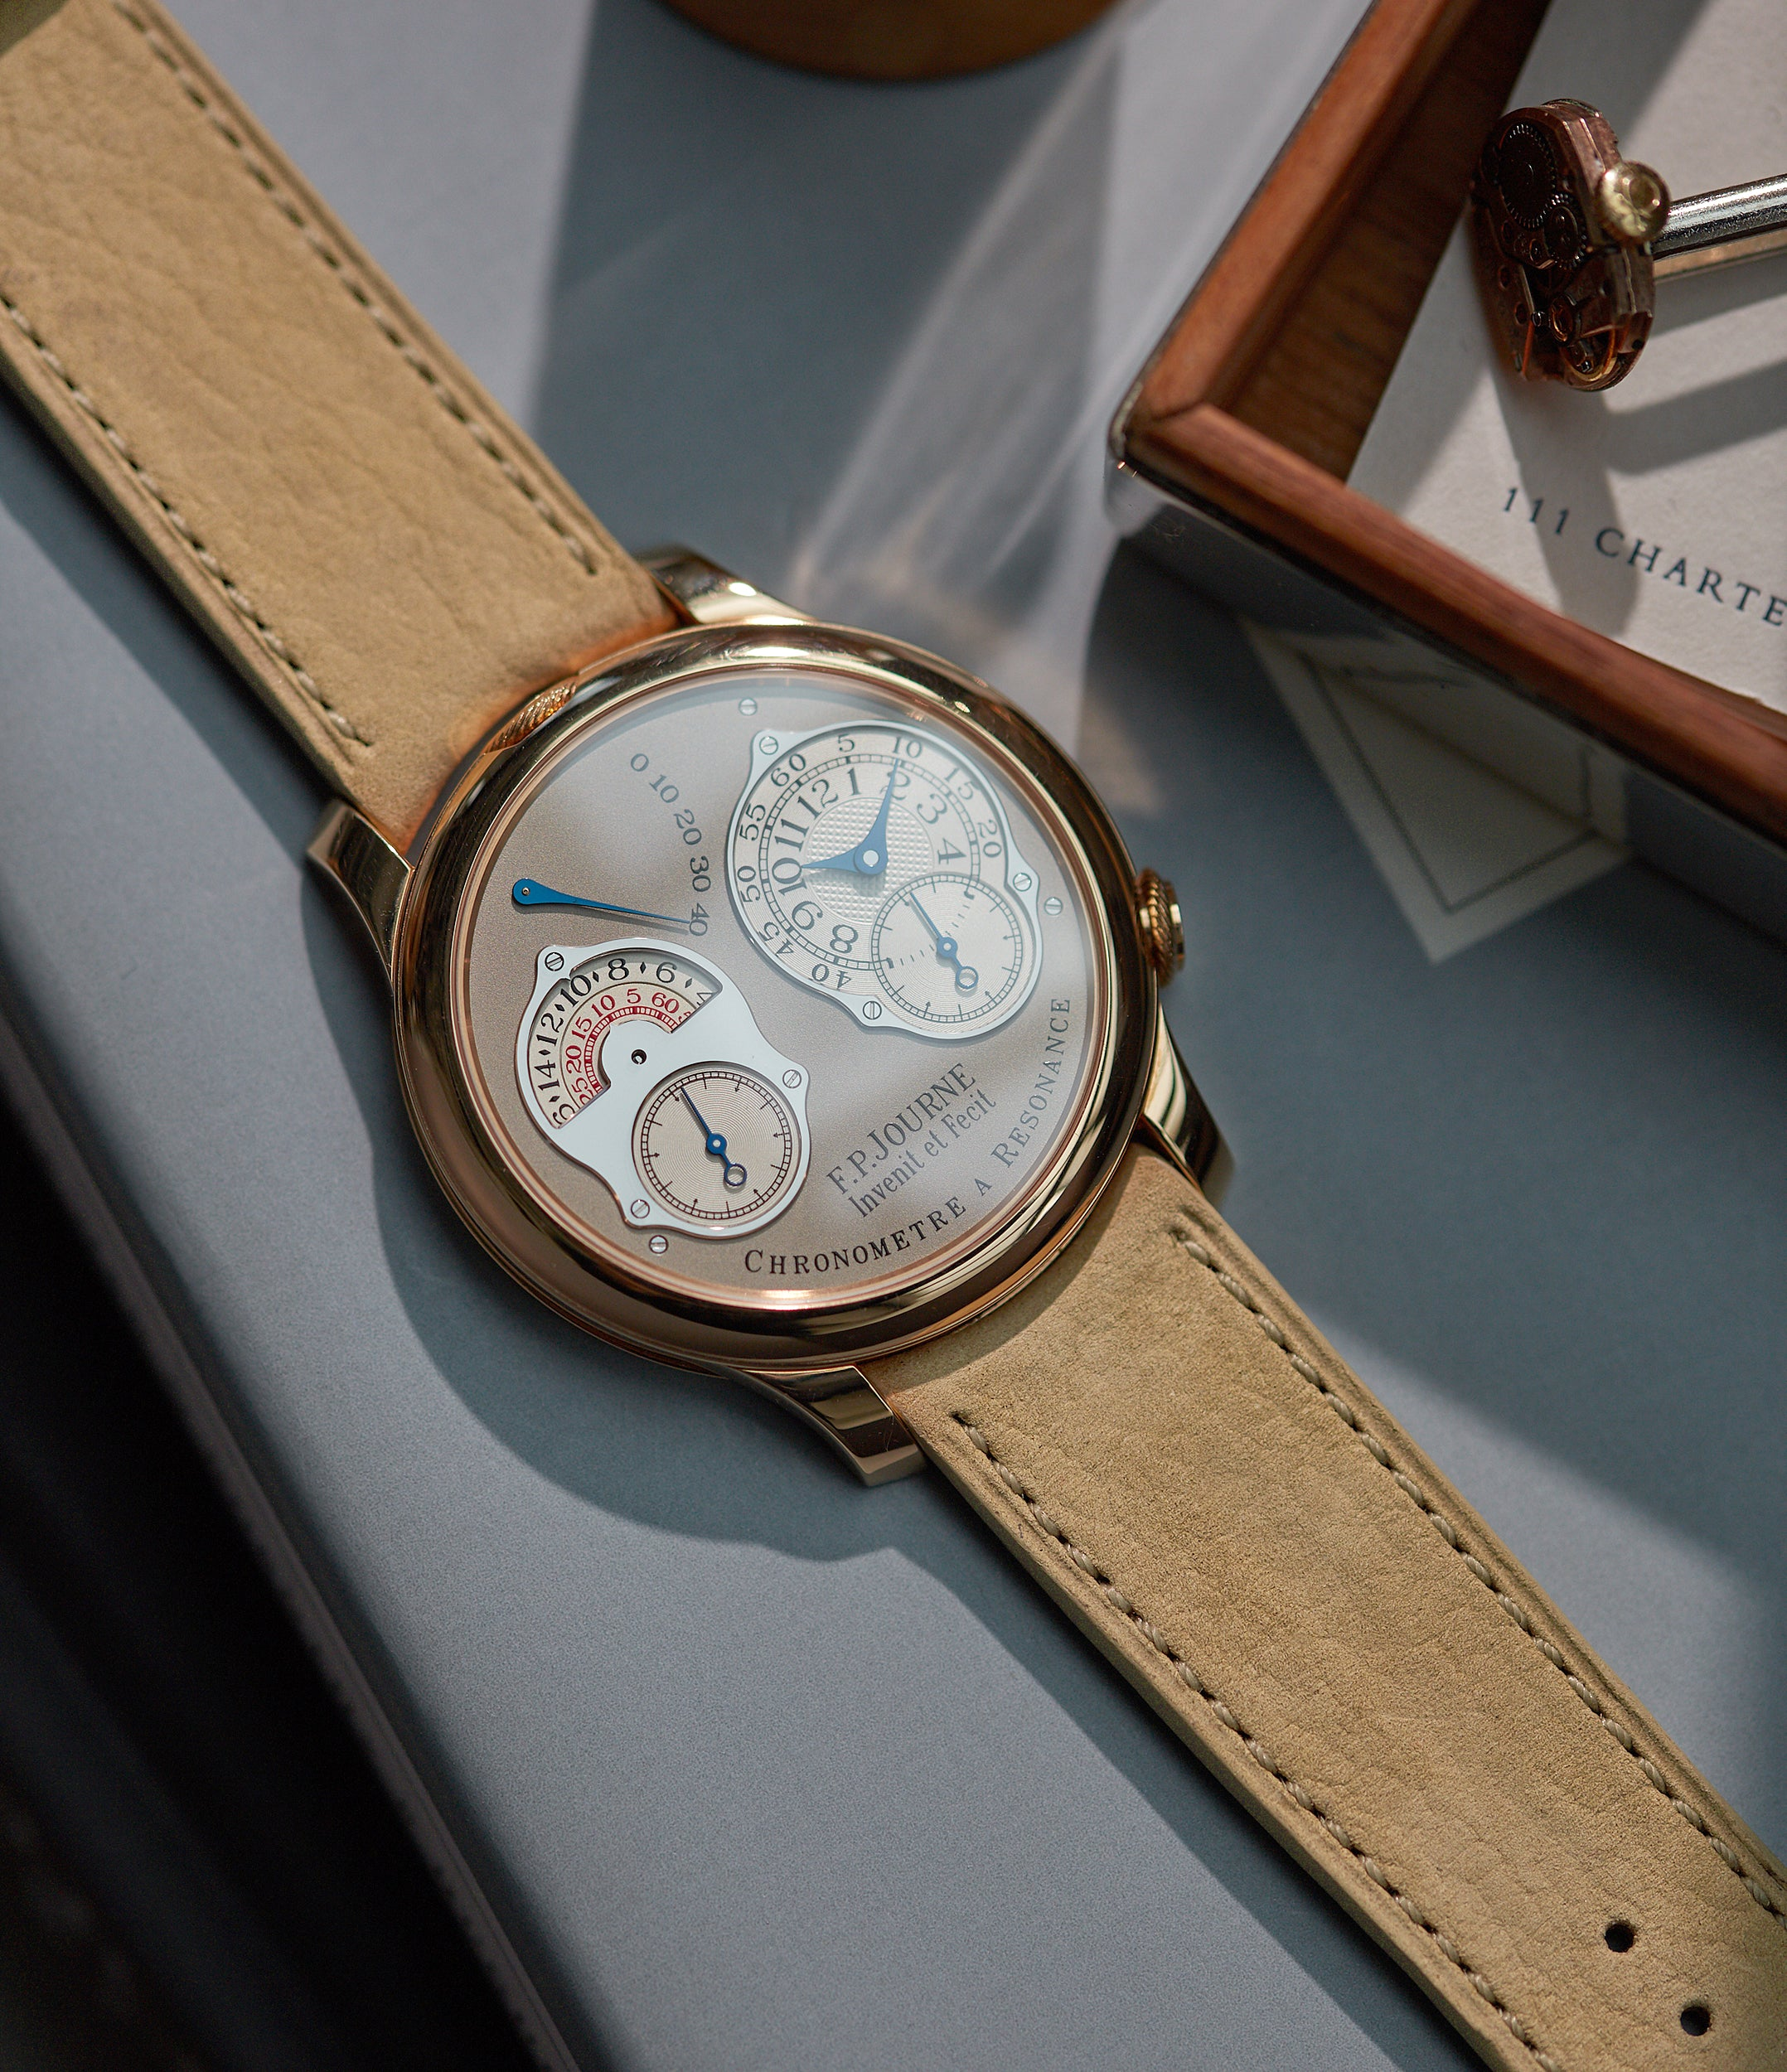 shop F. P. Journe-sized Capri 20x19mm curved sand nubuck leather watch strap for sale online at A Collected Man London